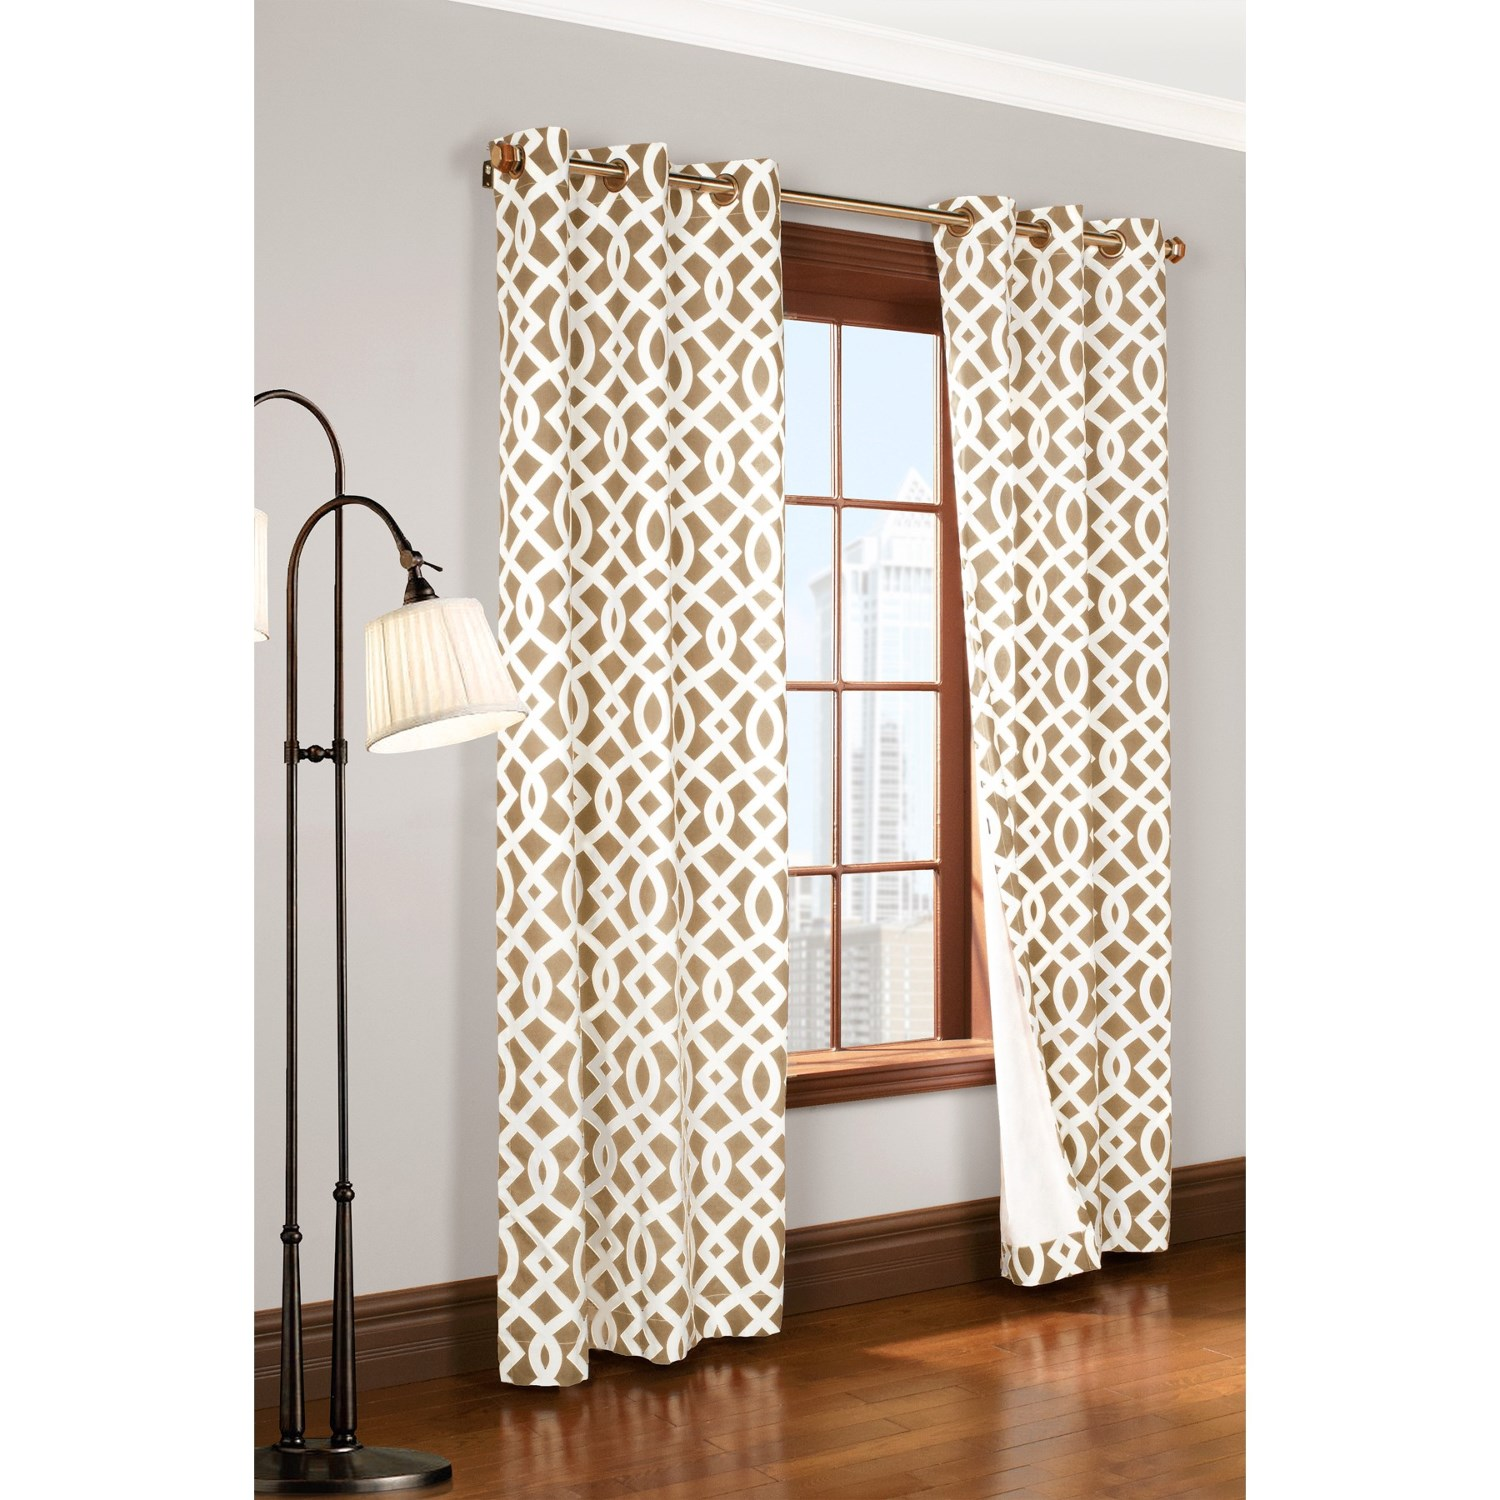 thermalogic weathermate trellis curtains 80x63 grommet top insulated save 36